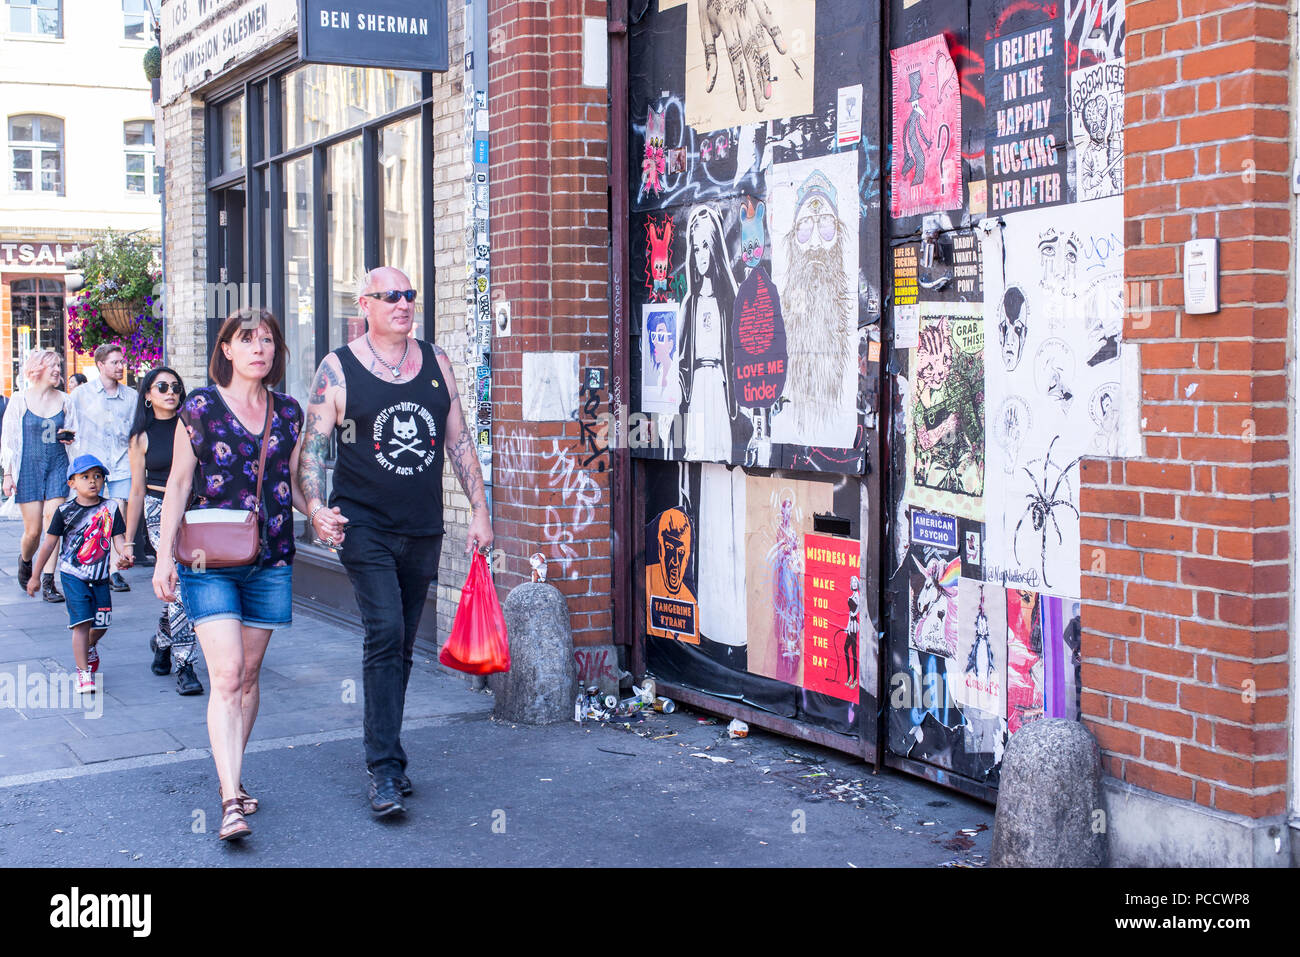 Male punk rock senior man holding hands with partner walking in front of wall covered in street art murals and posters in Commercial Street, in front  Stock Photo